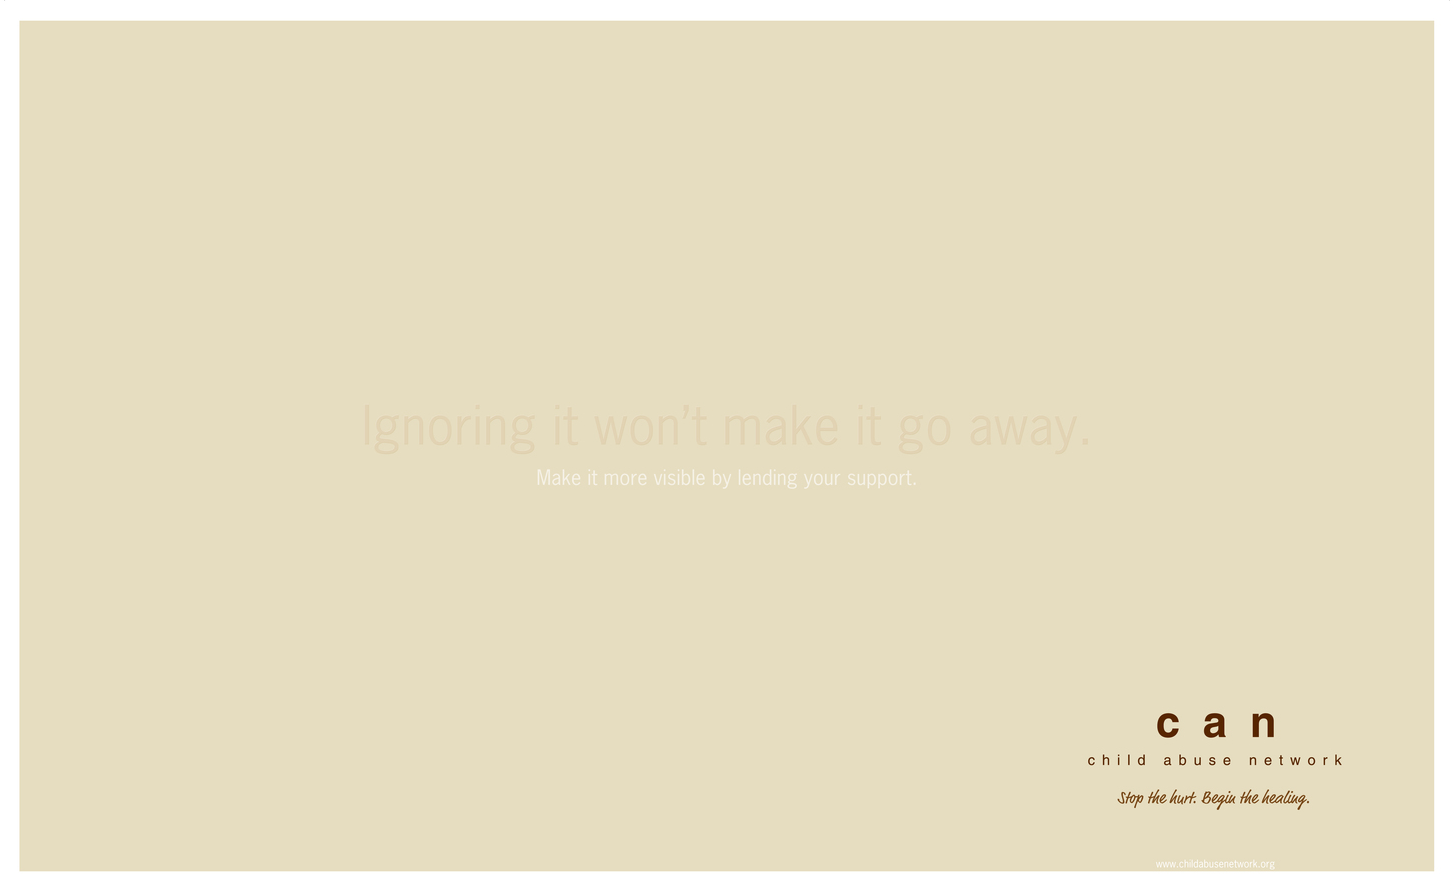 """""""Ignoring it won't make it go away."""" """"Make it more visible by lending your support."""""""